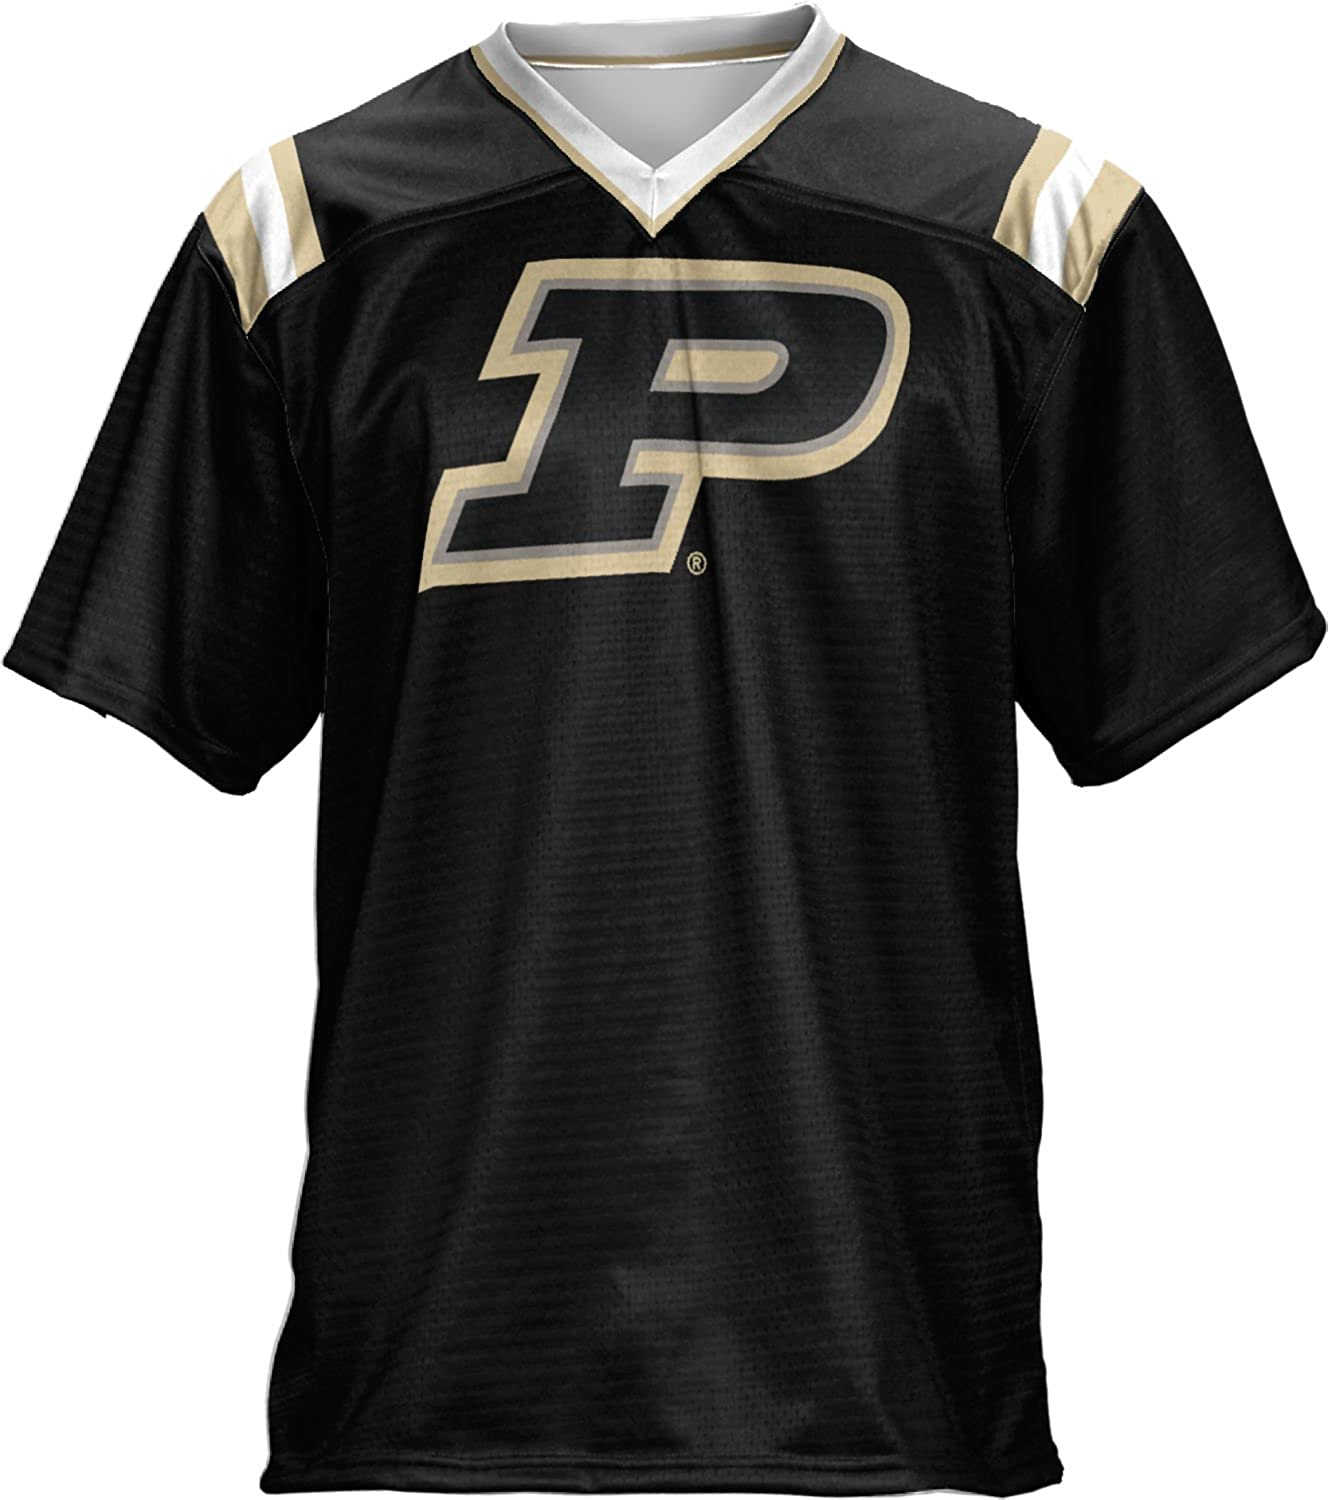 ProSphere Purdue University Men's Football Jersey (Goal Line)